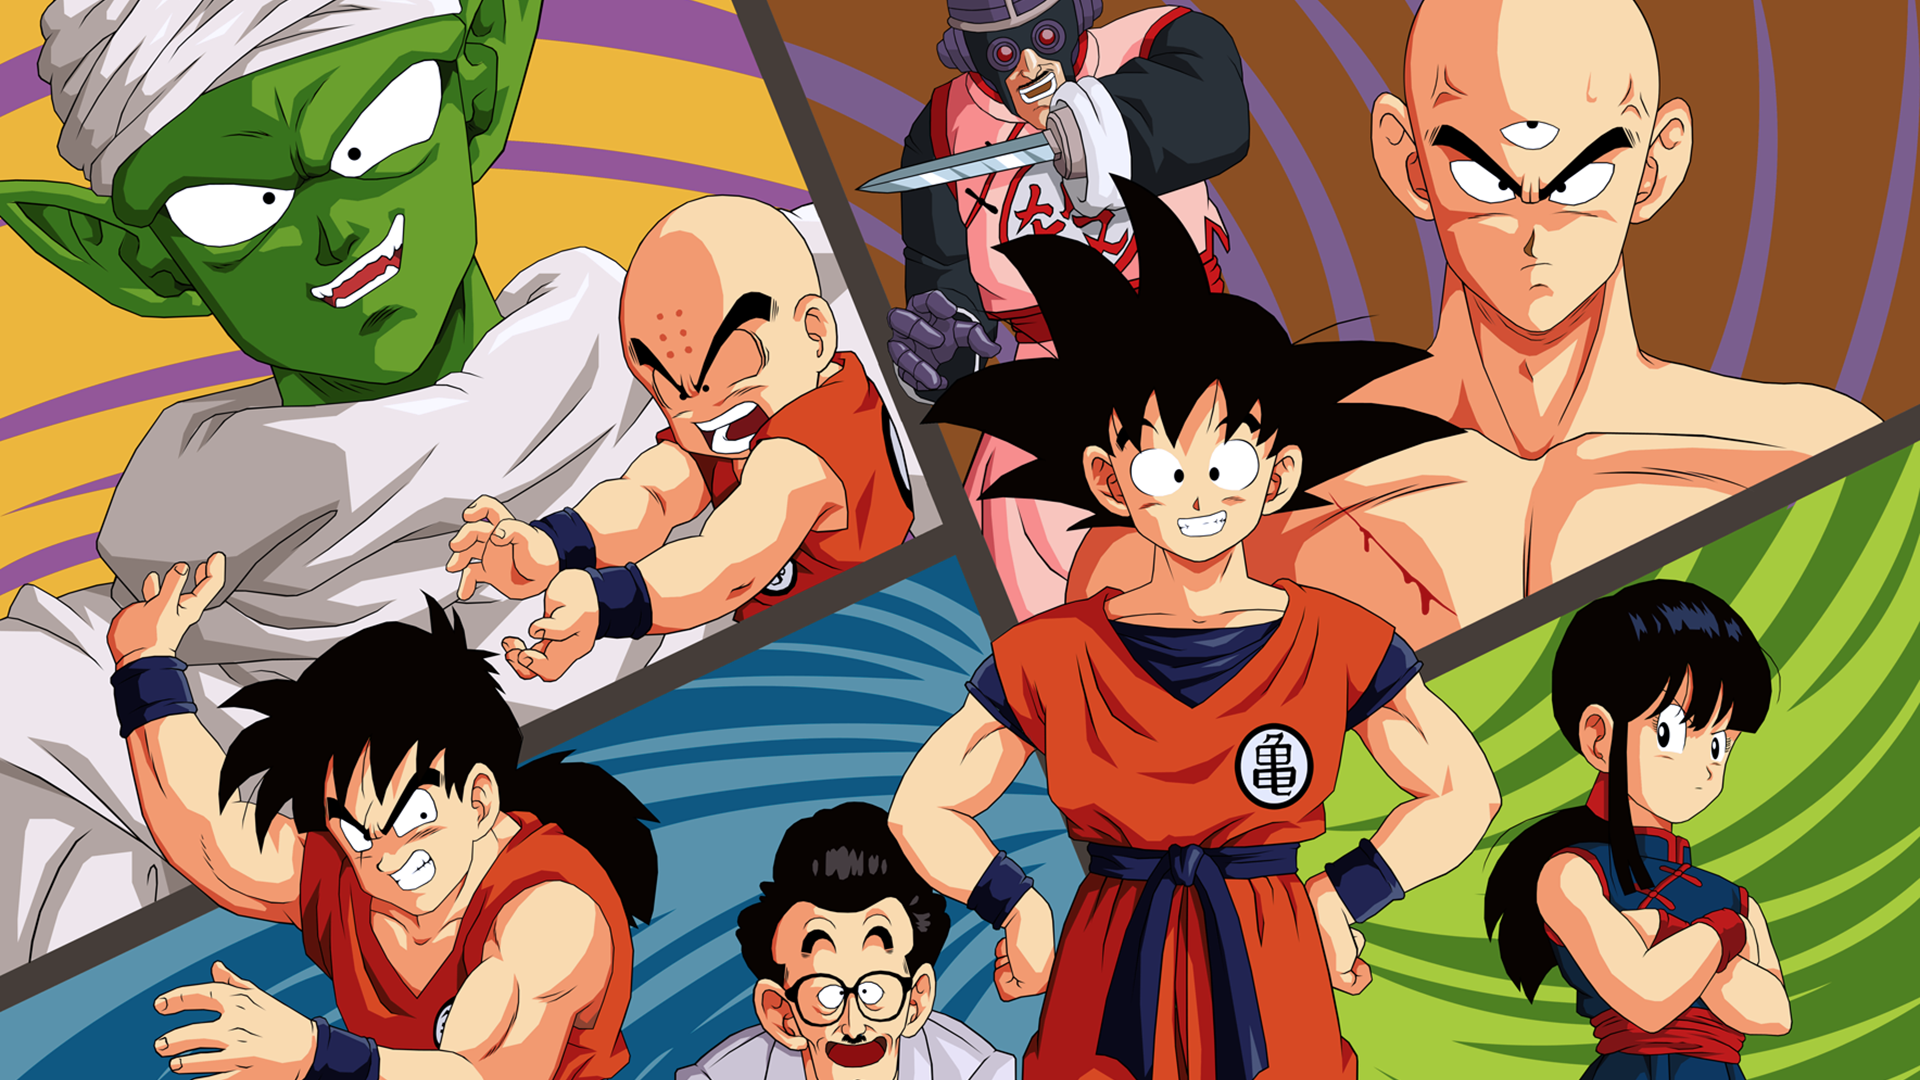 Anime - Dragon Ball  Goku Piccolo (Dragon Ball) Krillin (Dragon Ball) Chichi (Dragon Ball) Tenshinhan (Dragon Ball) Yamcha (Dragon Ball) Mercenary Tao (Dragon Ball) Master Roshi (Dragon Ball) Wallpaper